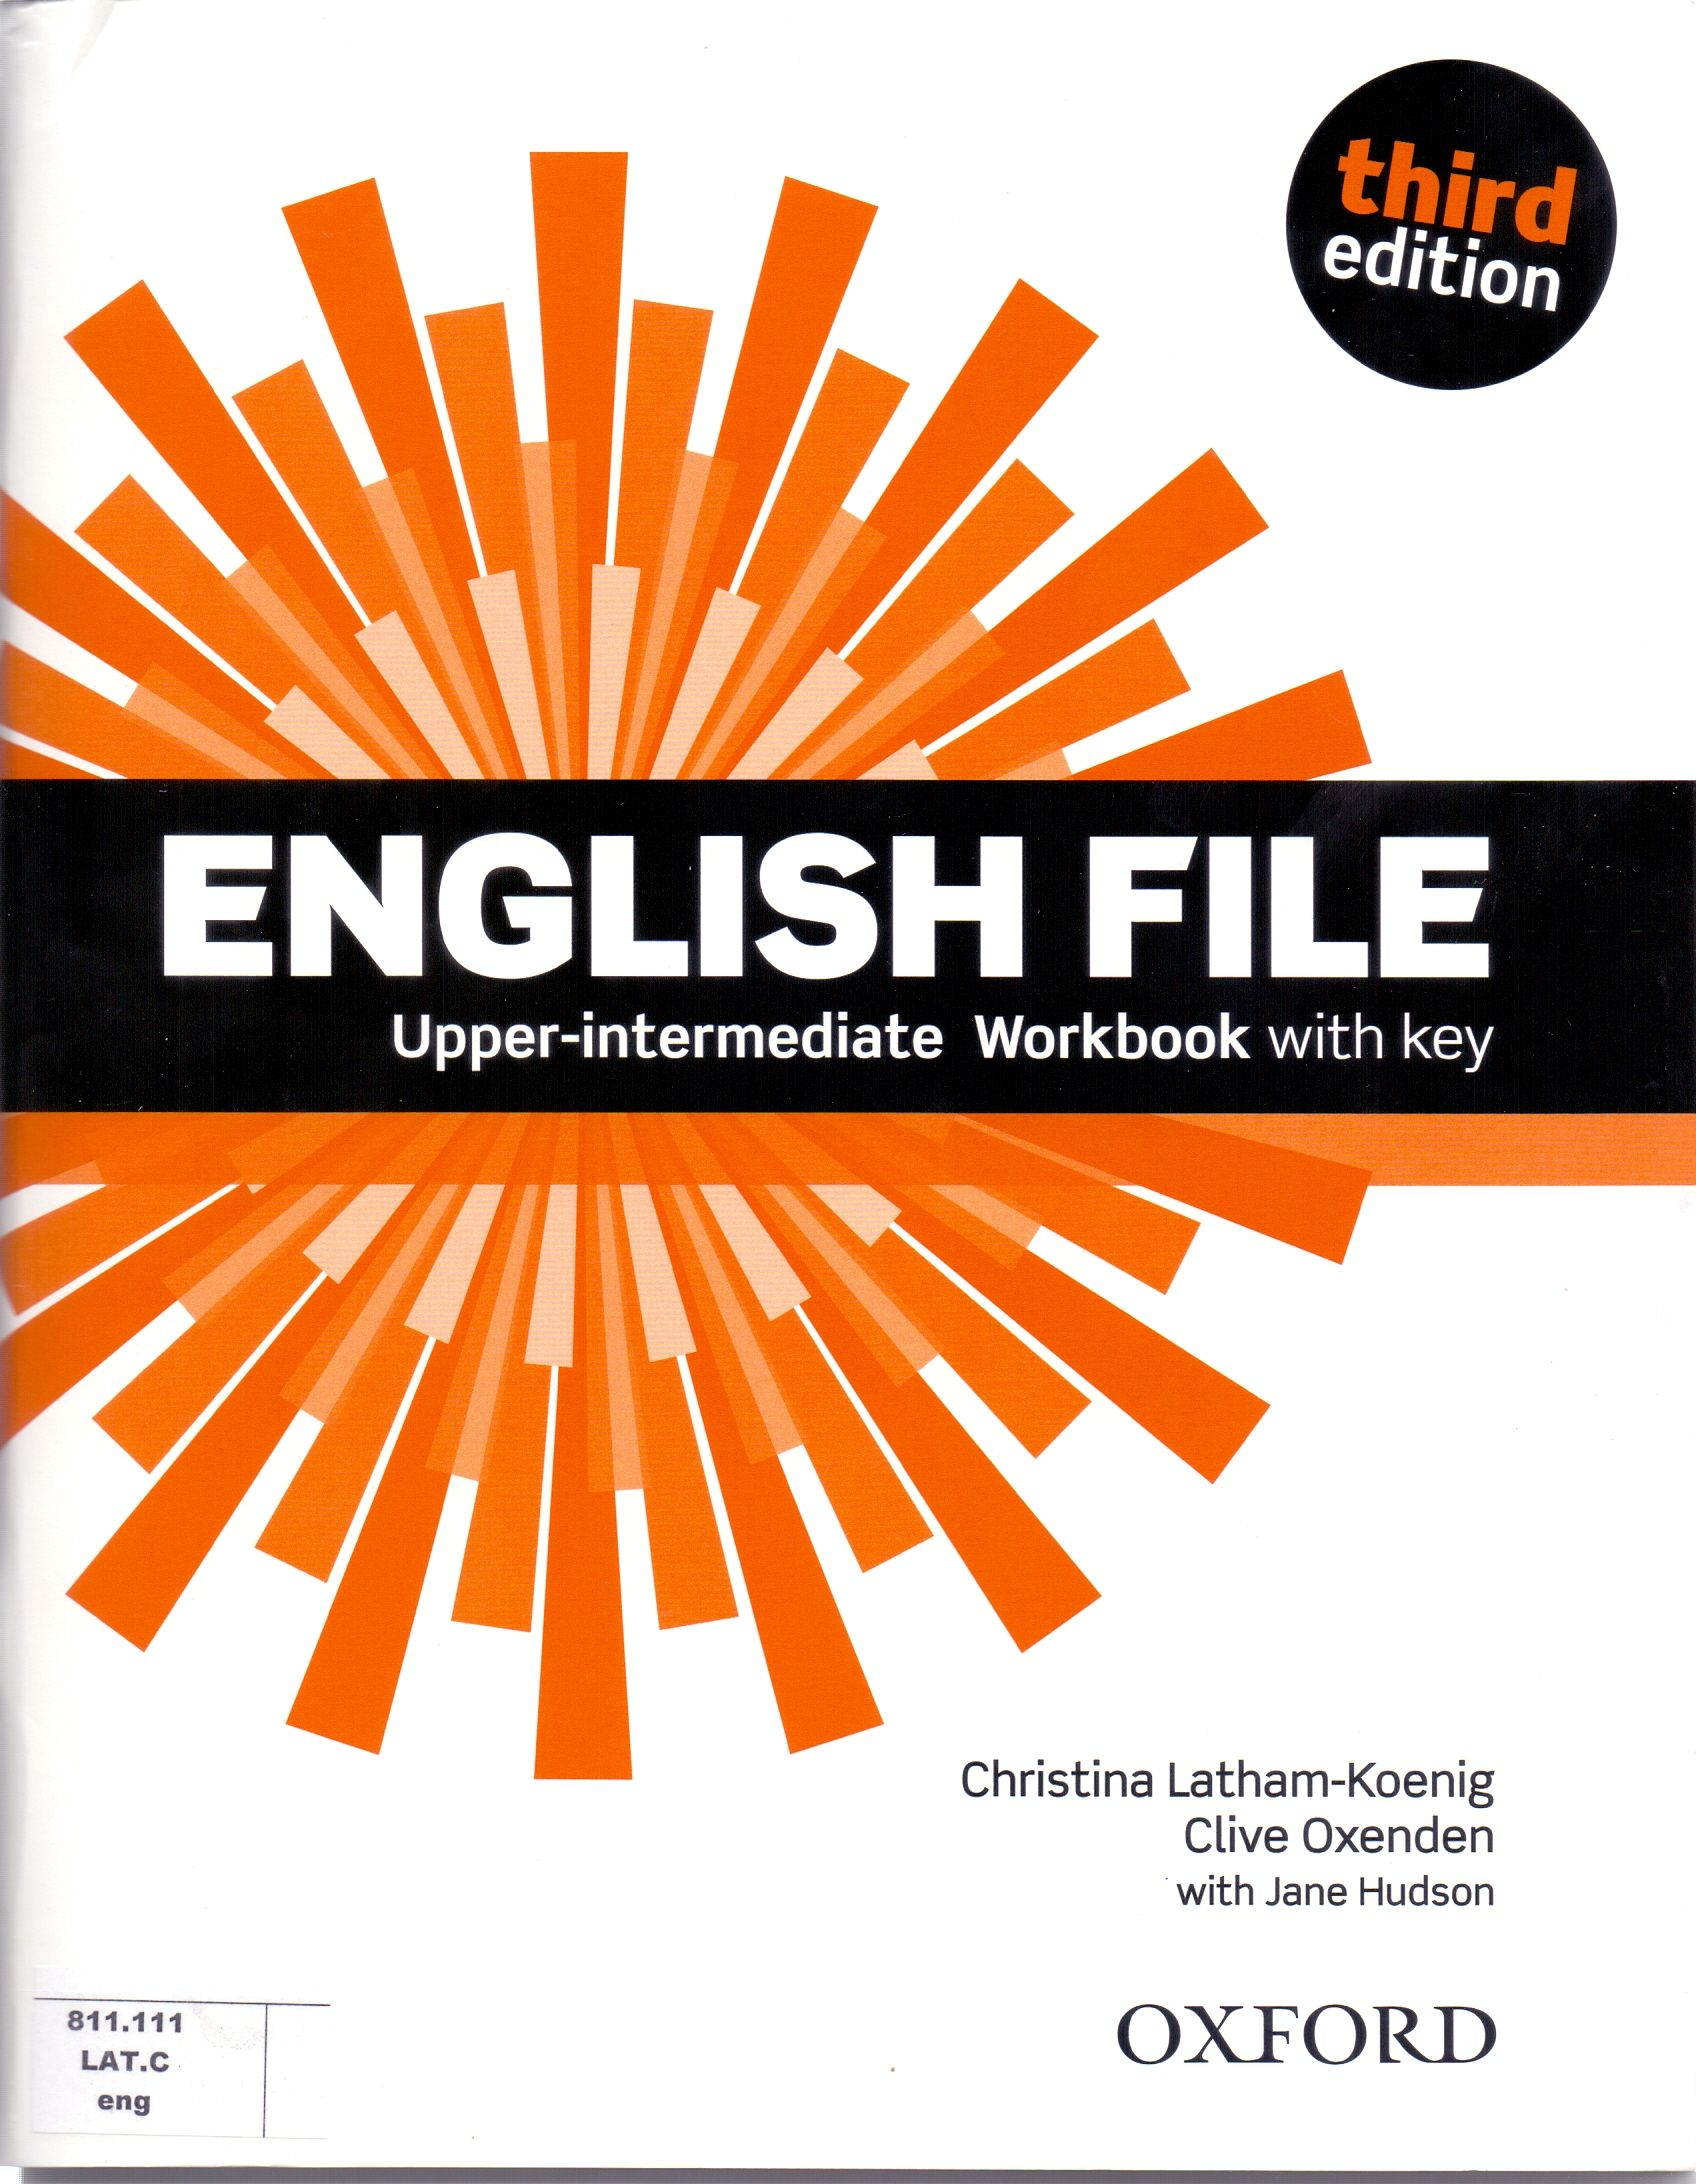 English File Upper Intermediate Workbook With Key Christina